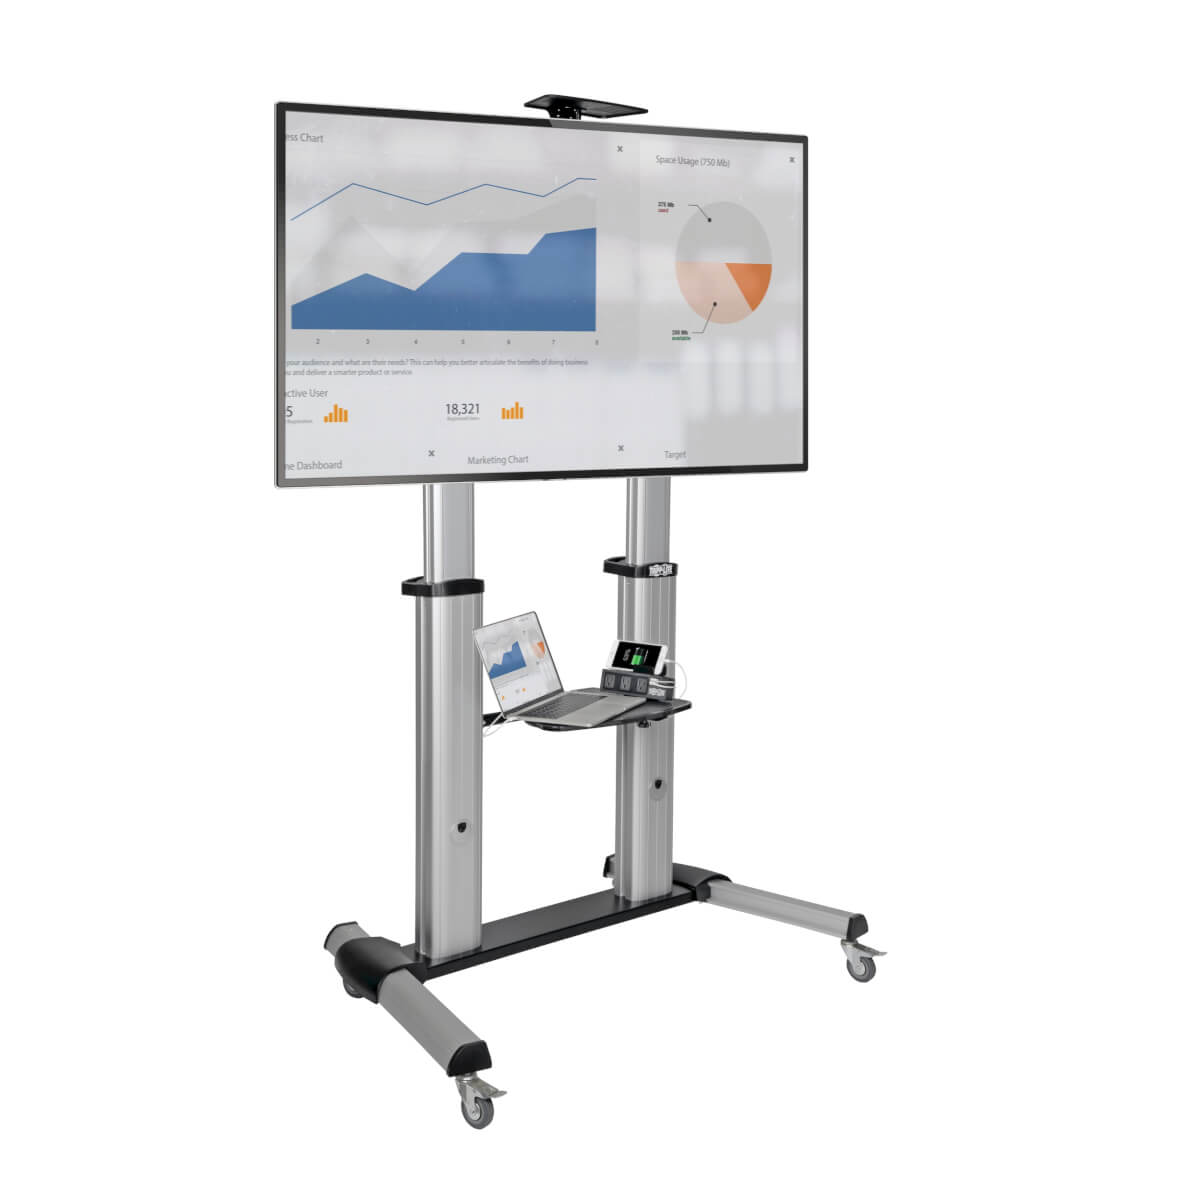 dmcs60100xx mobile flat/curved panel floor stand for 60 to 100 inch tvs and monitors